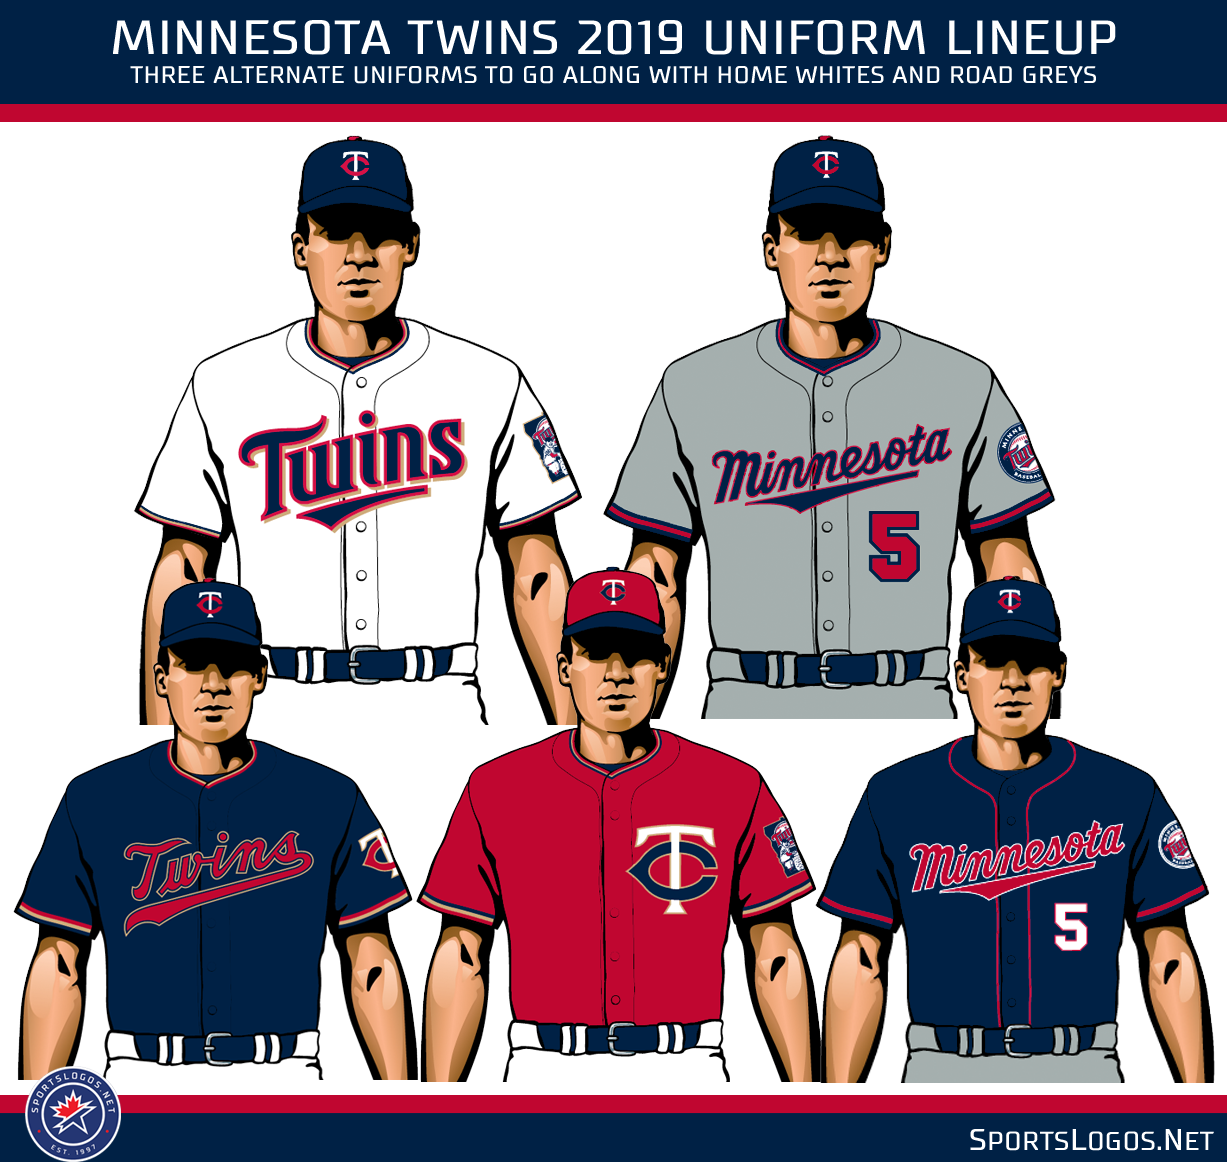 a96786ef7cd None of the other Twins uniforms are set to be altered for the 2019 season,  the home white, road grey, red alternate, and the navy blue alternate will  all ...